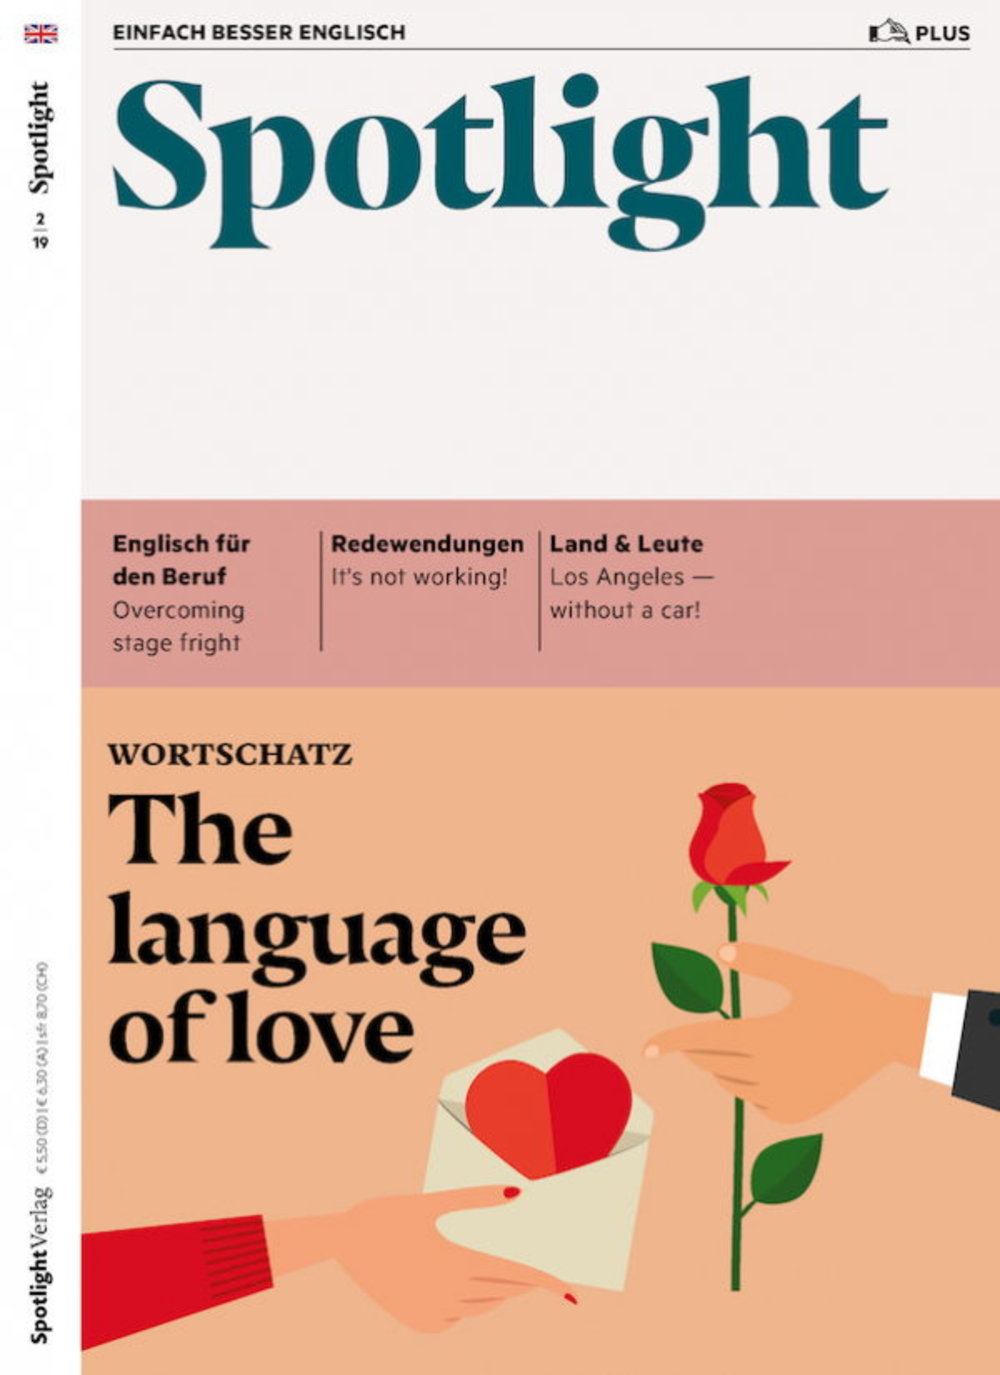 Spotlight PLUS 02/2019